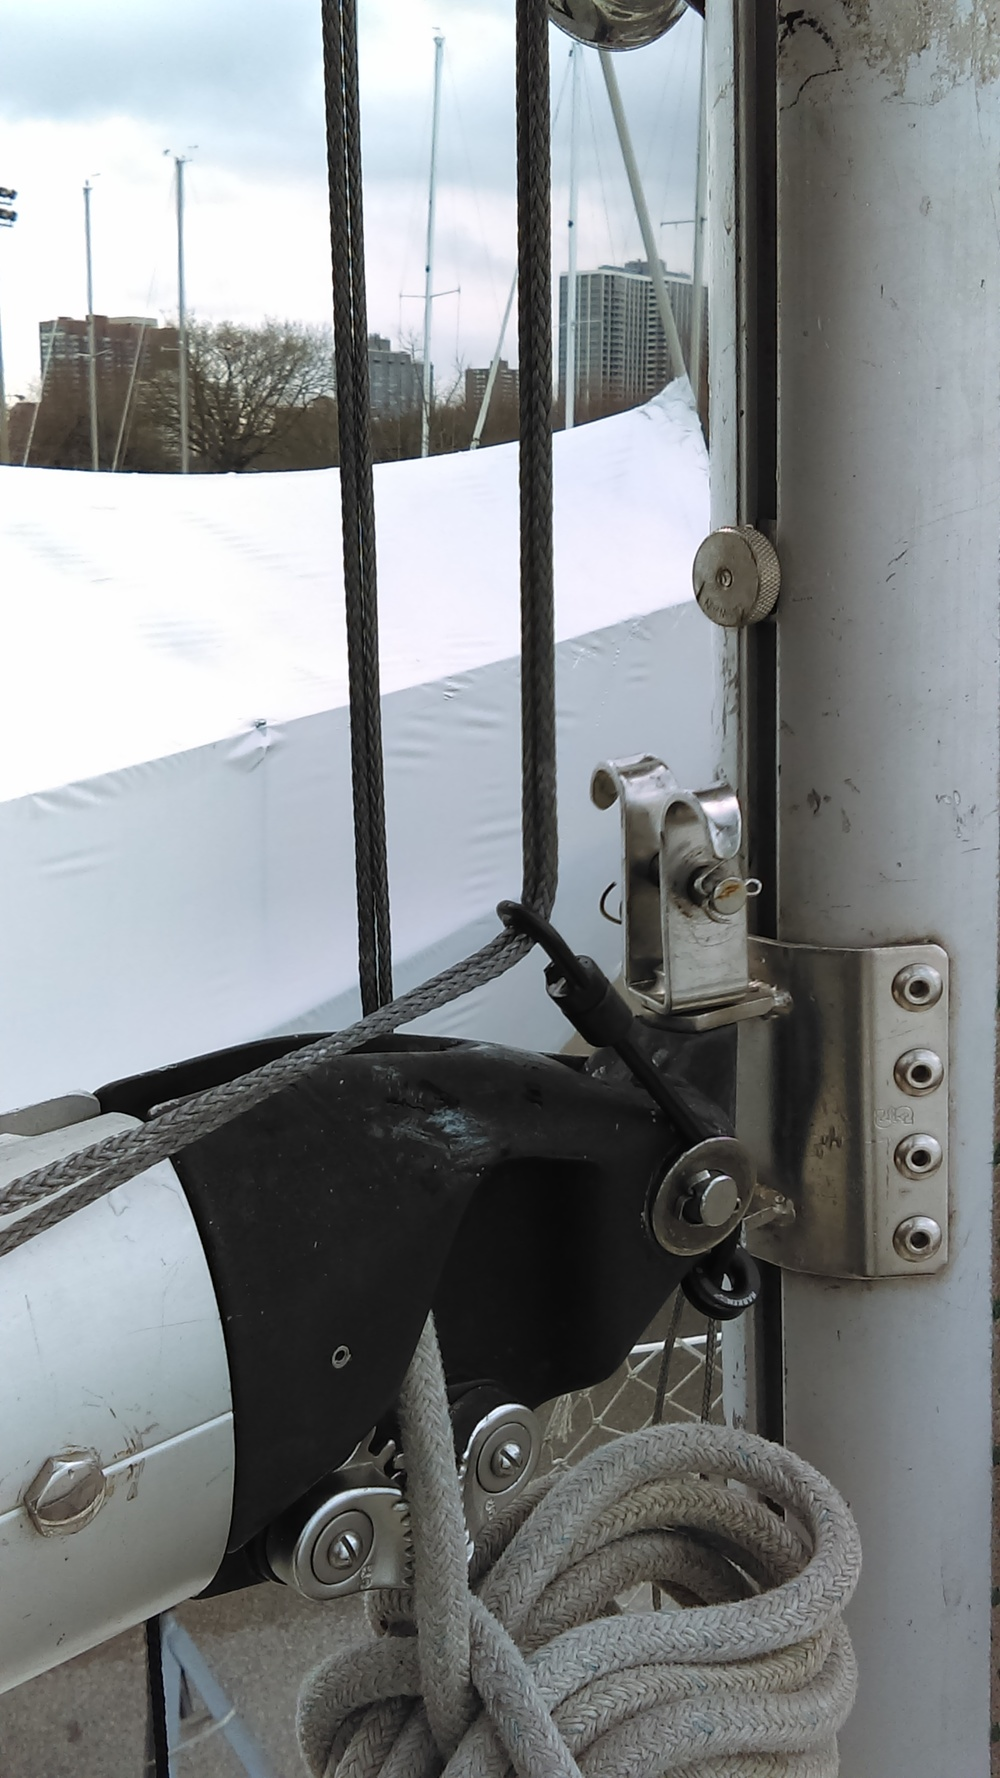 there is a bungee cord with hooks that hold the lazy jacks in place while retracted